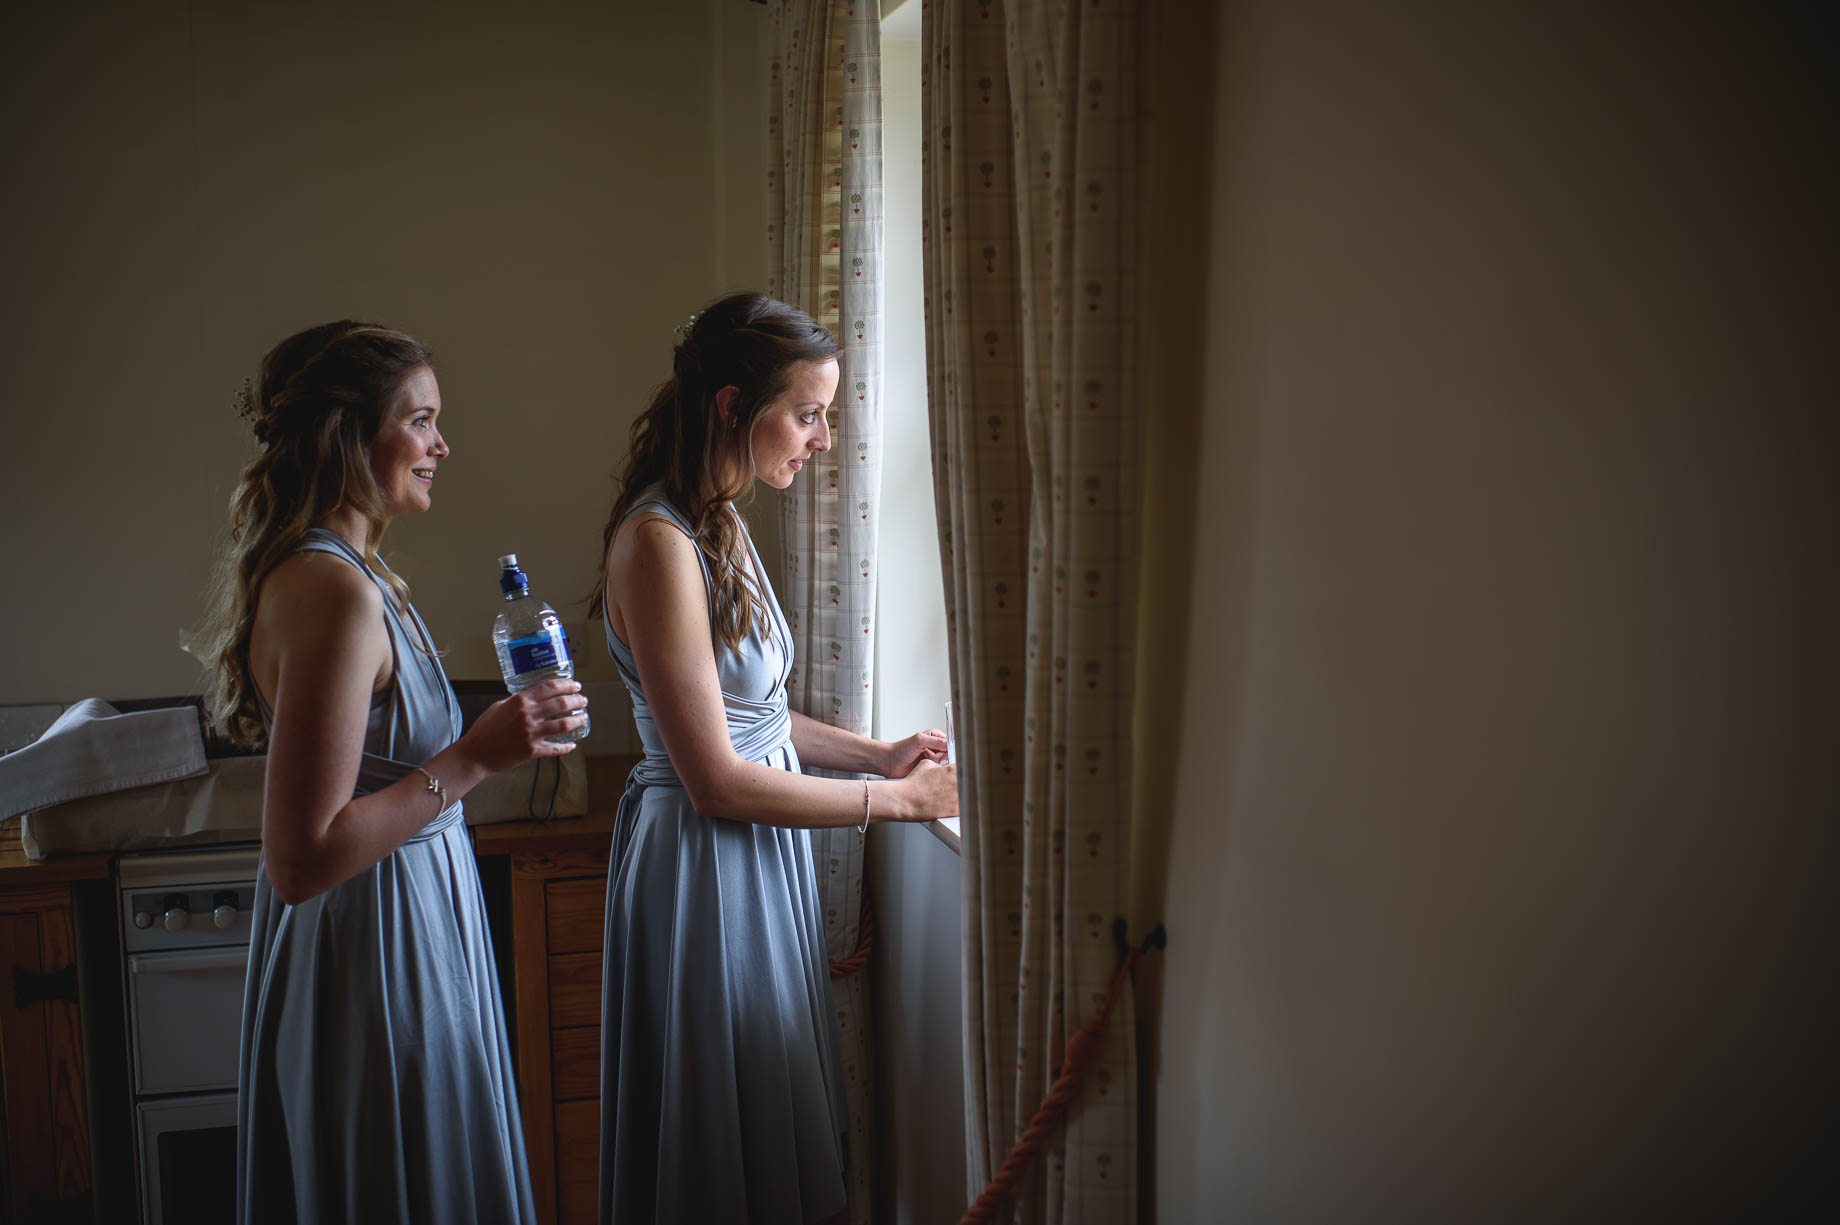 Bury Court Barn wedding photography by Guy Collier - Heather and Pat (28 of 170)